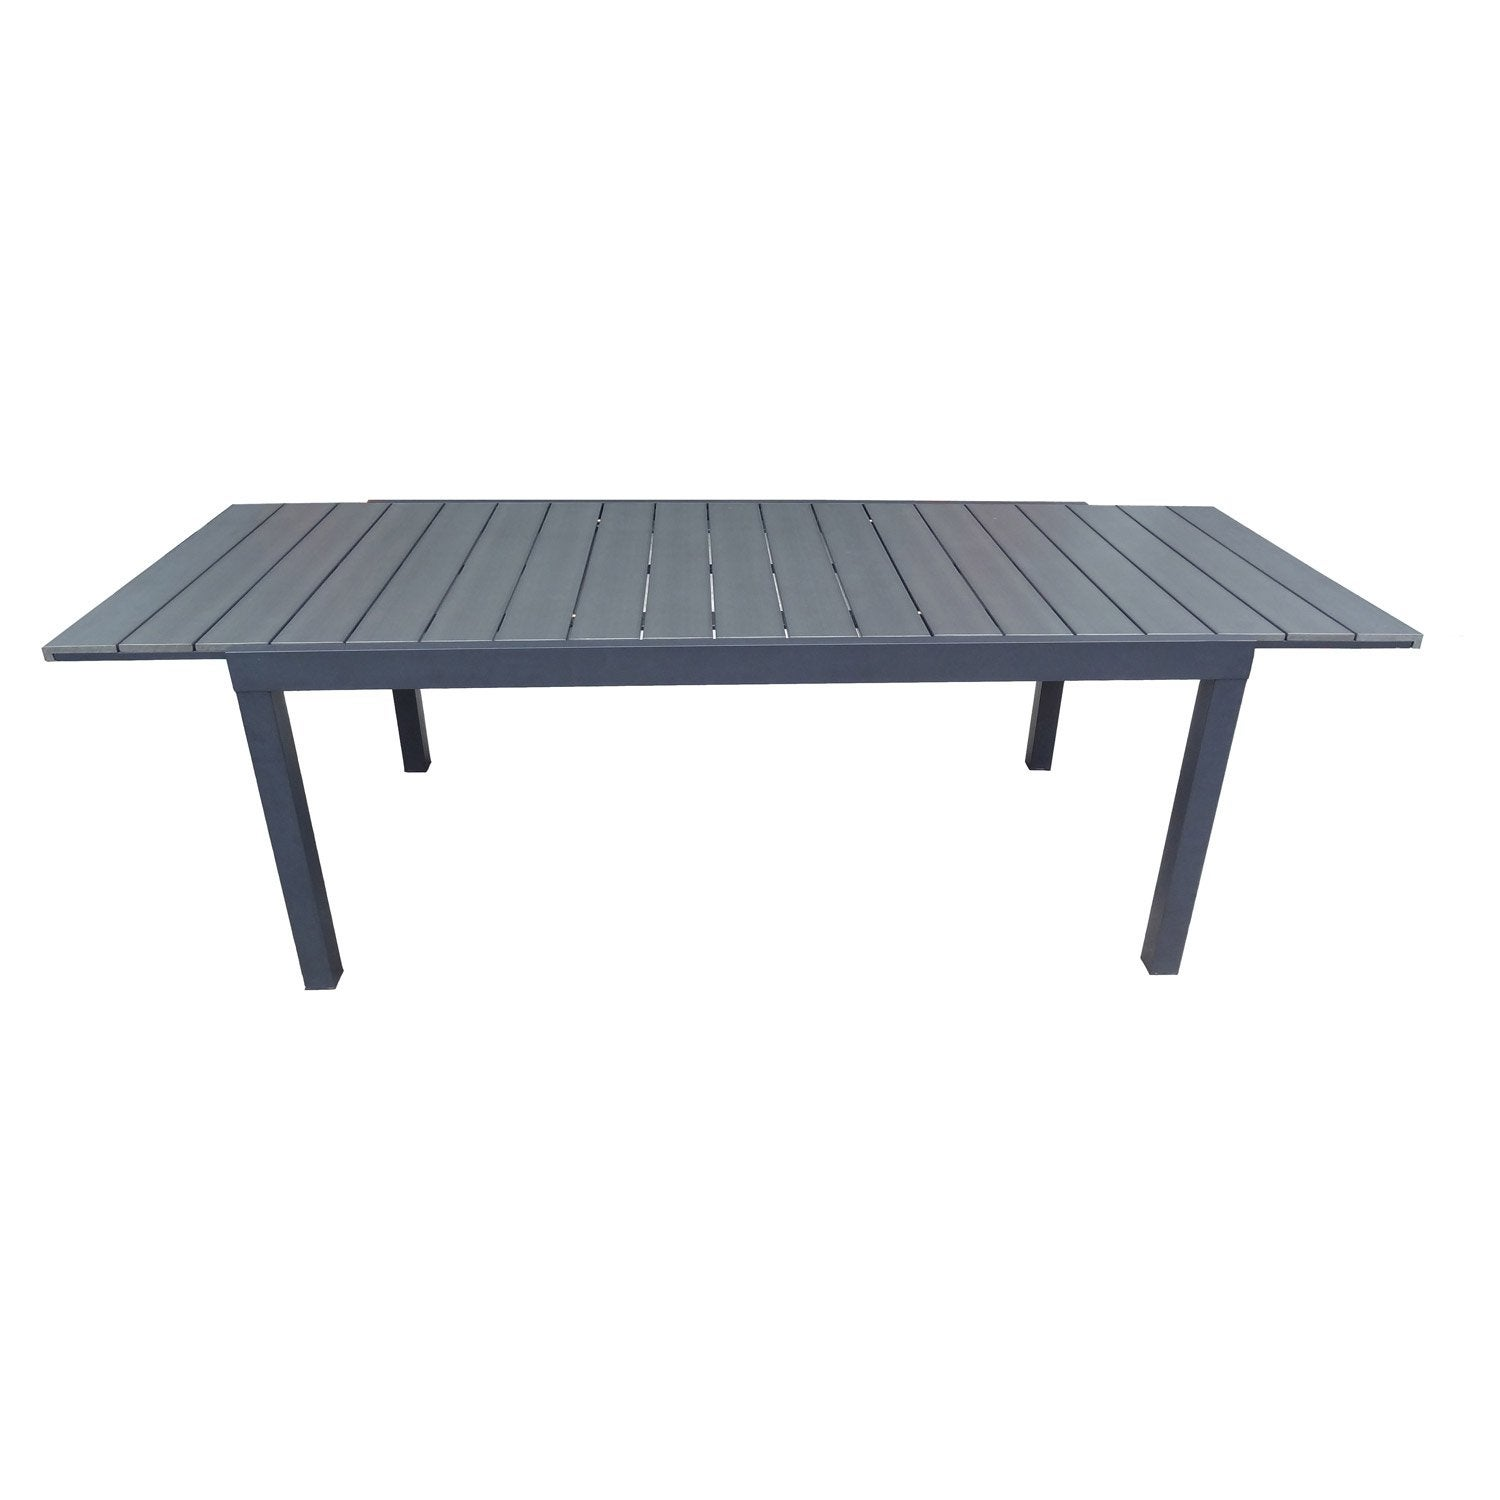 Table de jardin naterial pratt rectangulaire gris leroy - Pied de table basse leroy merlin ...